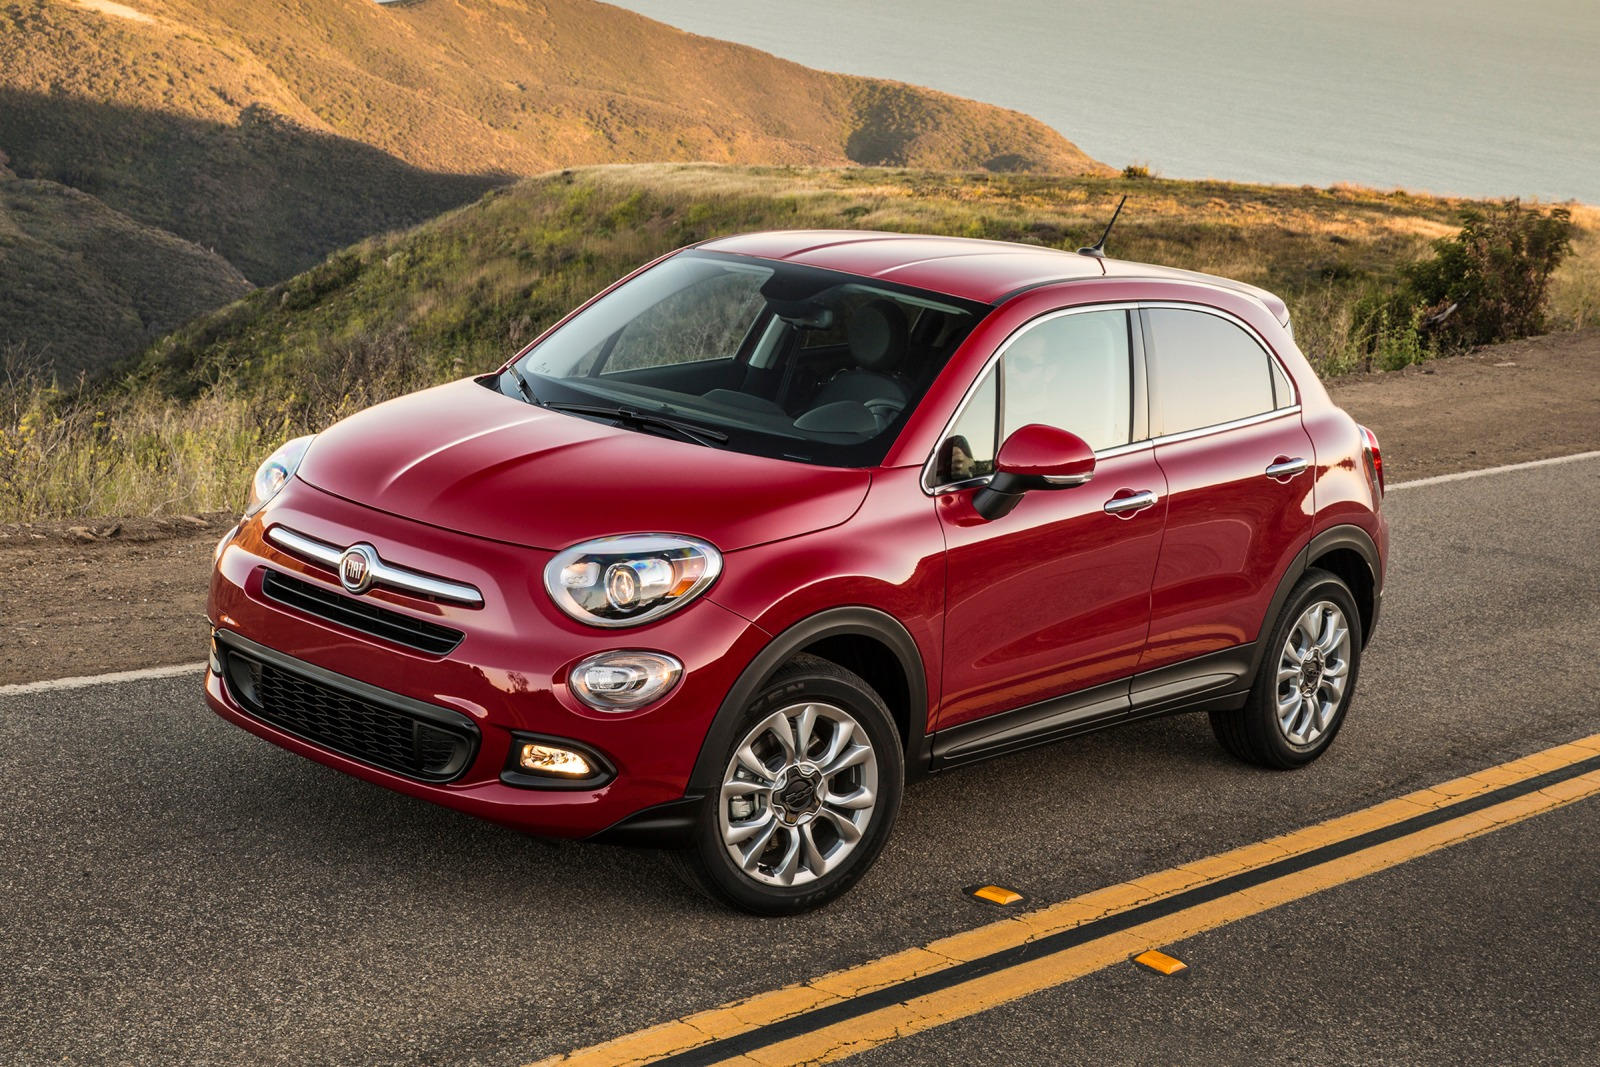 2018 fiat 500x crossover review trims specs and price carbuzz. Black Bedroom Furniture Sets. Home Design Ideas